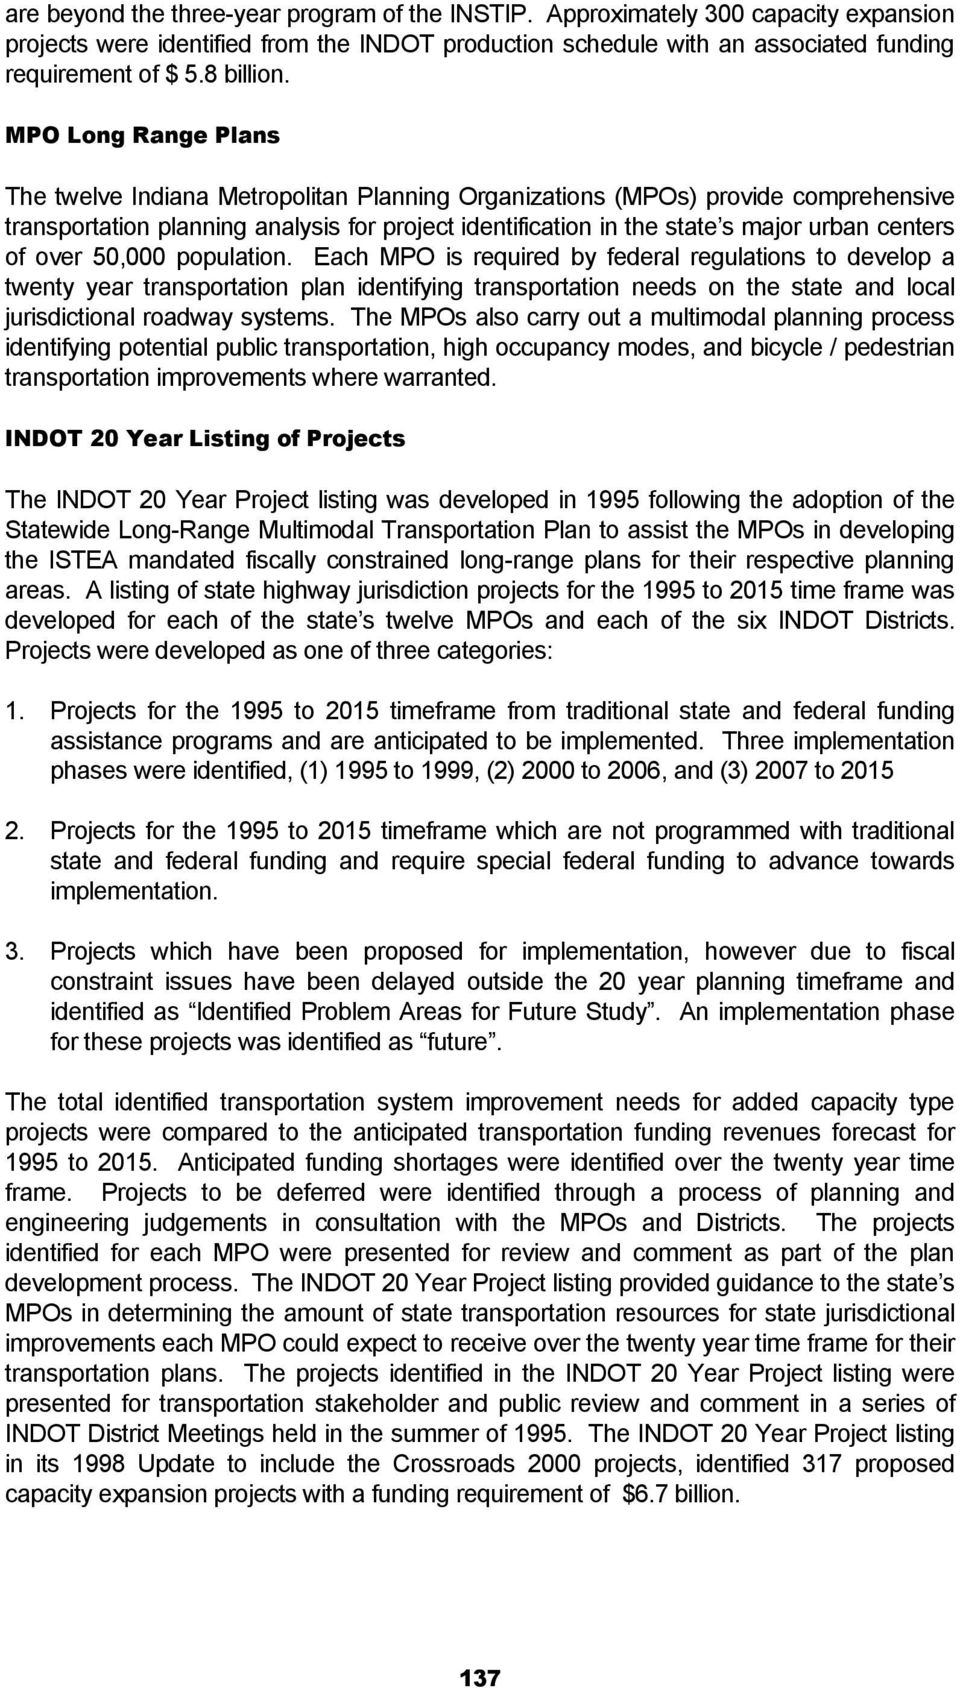 MPO Long Range Plans The twelve Indiana Metropolitan Planning Organizations (MPOs) provide comprehensive transportation planning analysis for project identification in the state s major urban centers